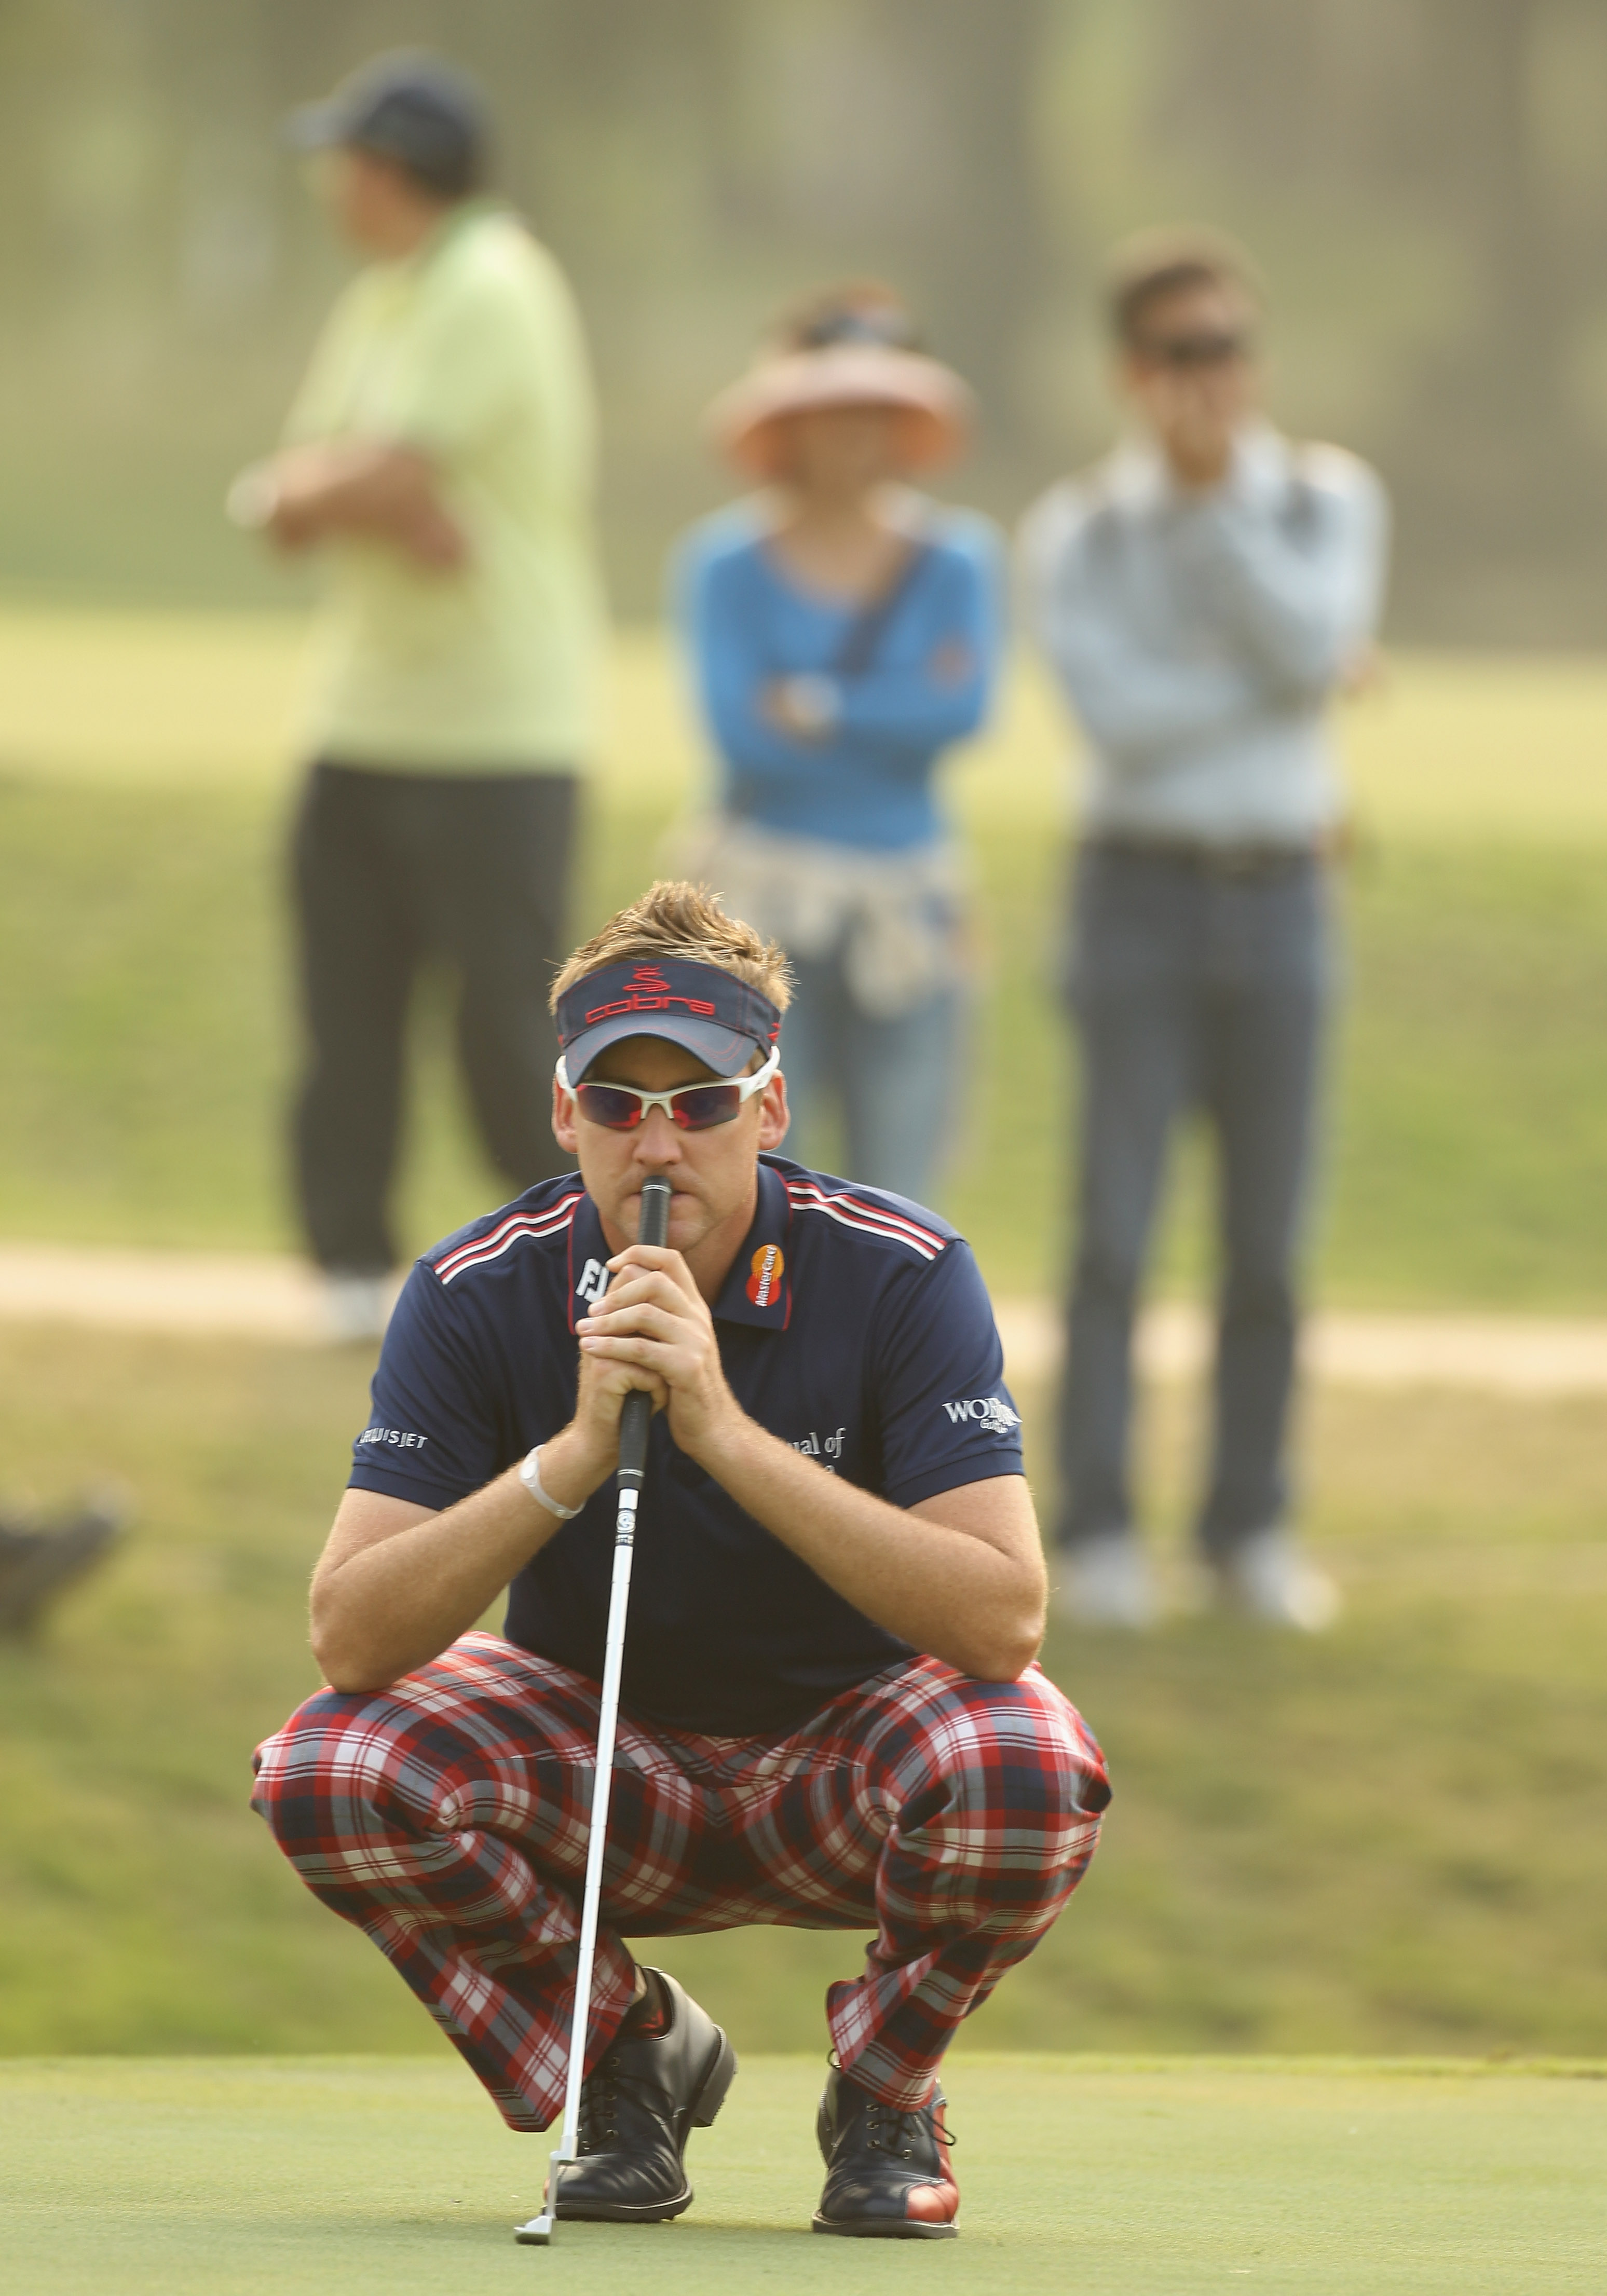 HONG KONG - NOVEMBER 19:  Ian Poulter of England  lines up a putt on the 18th green during day two of the UBS Hong Kong Open at The Hong Kong Golf Club on November 19, 2010 in Hong Kong, Hong Kong.  (Photo by Ian Walton/Getty Images)